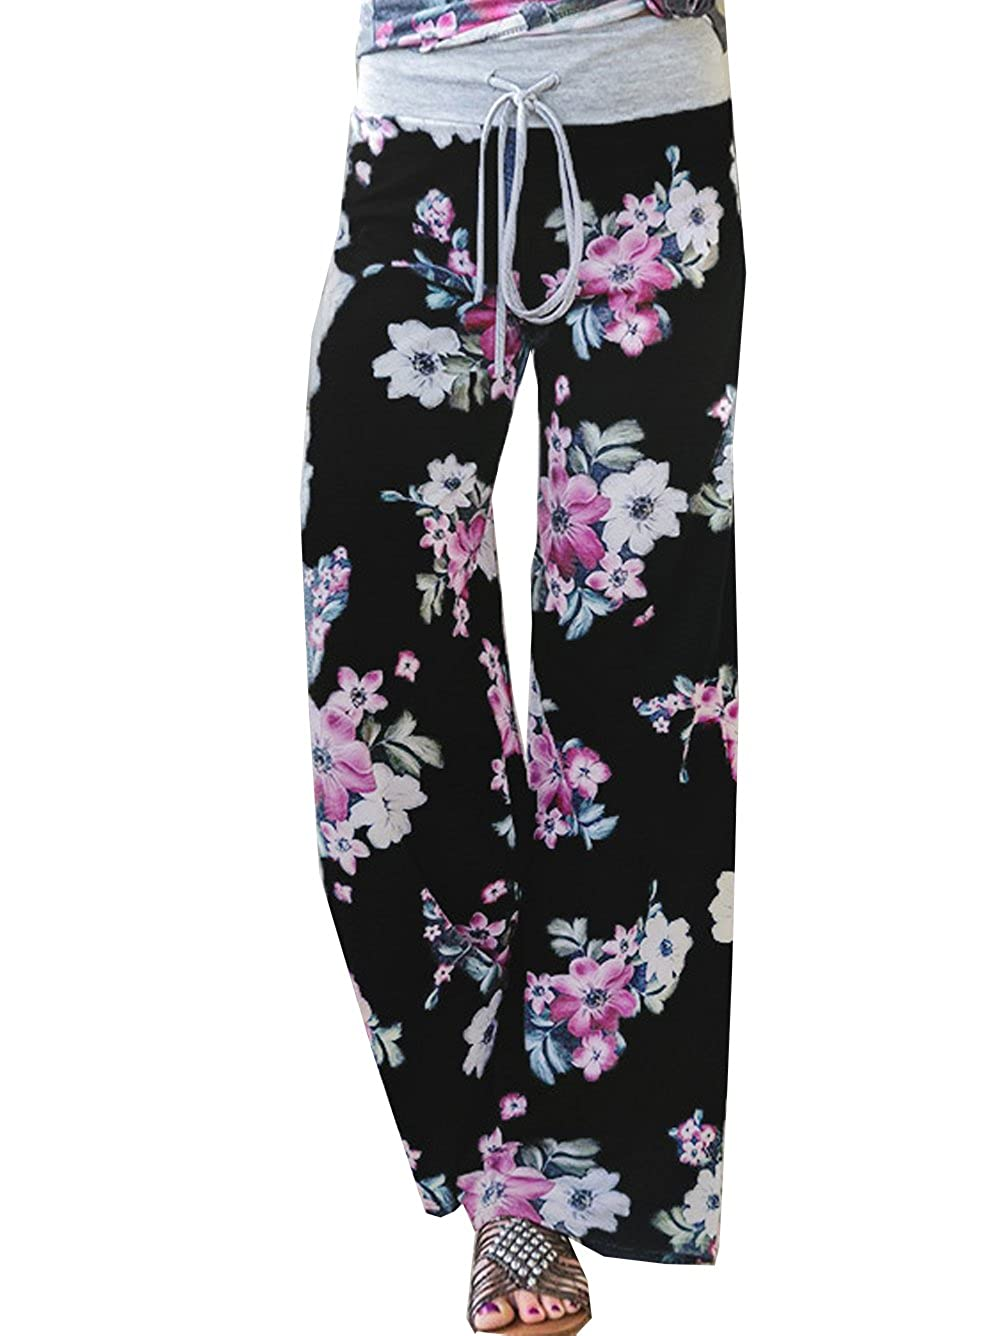 Black 3 Famulily Women's American Flag Floral Drawstring High Waist Wide Leg Pants